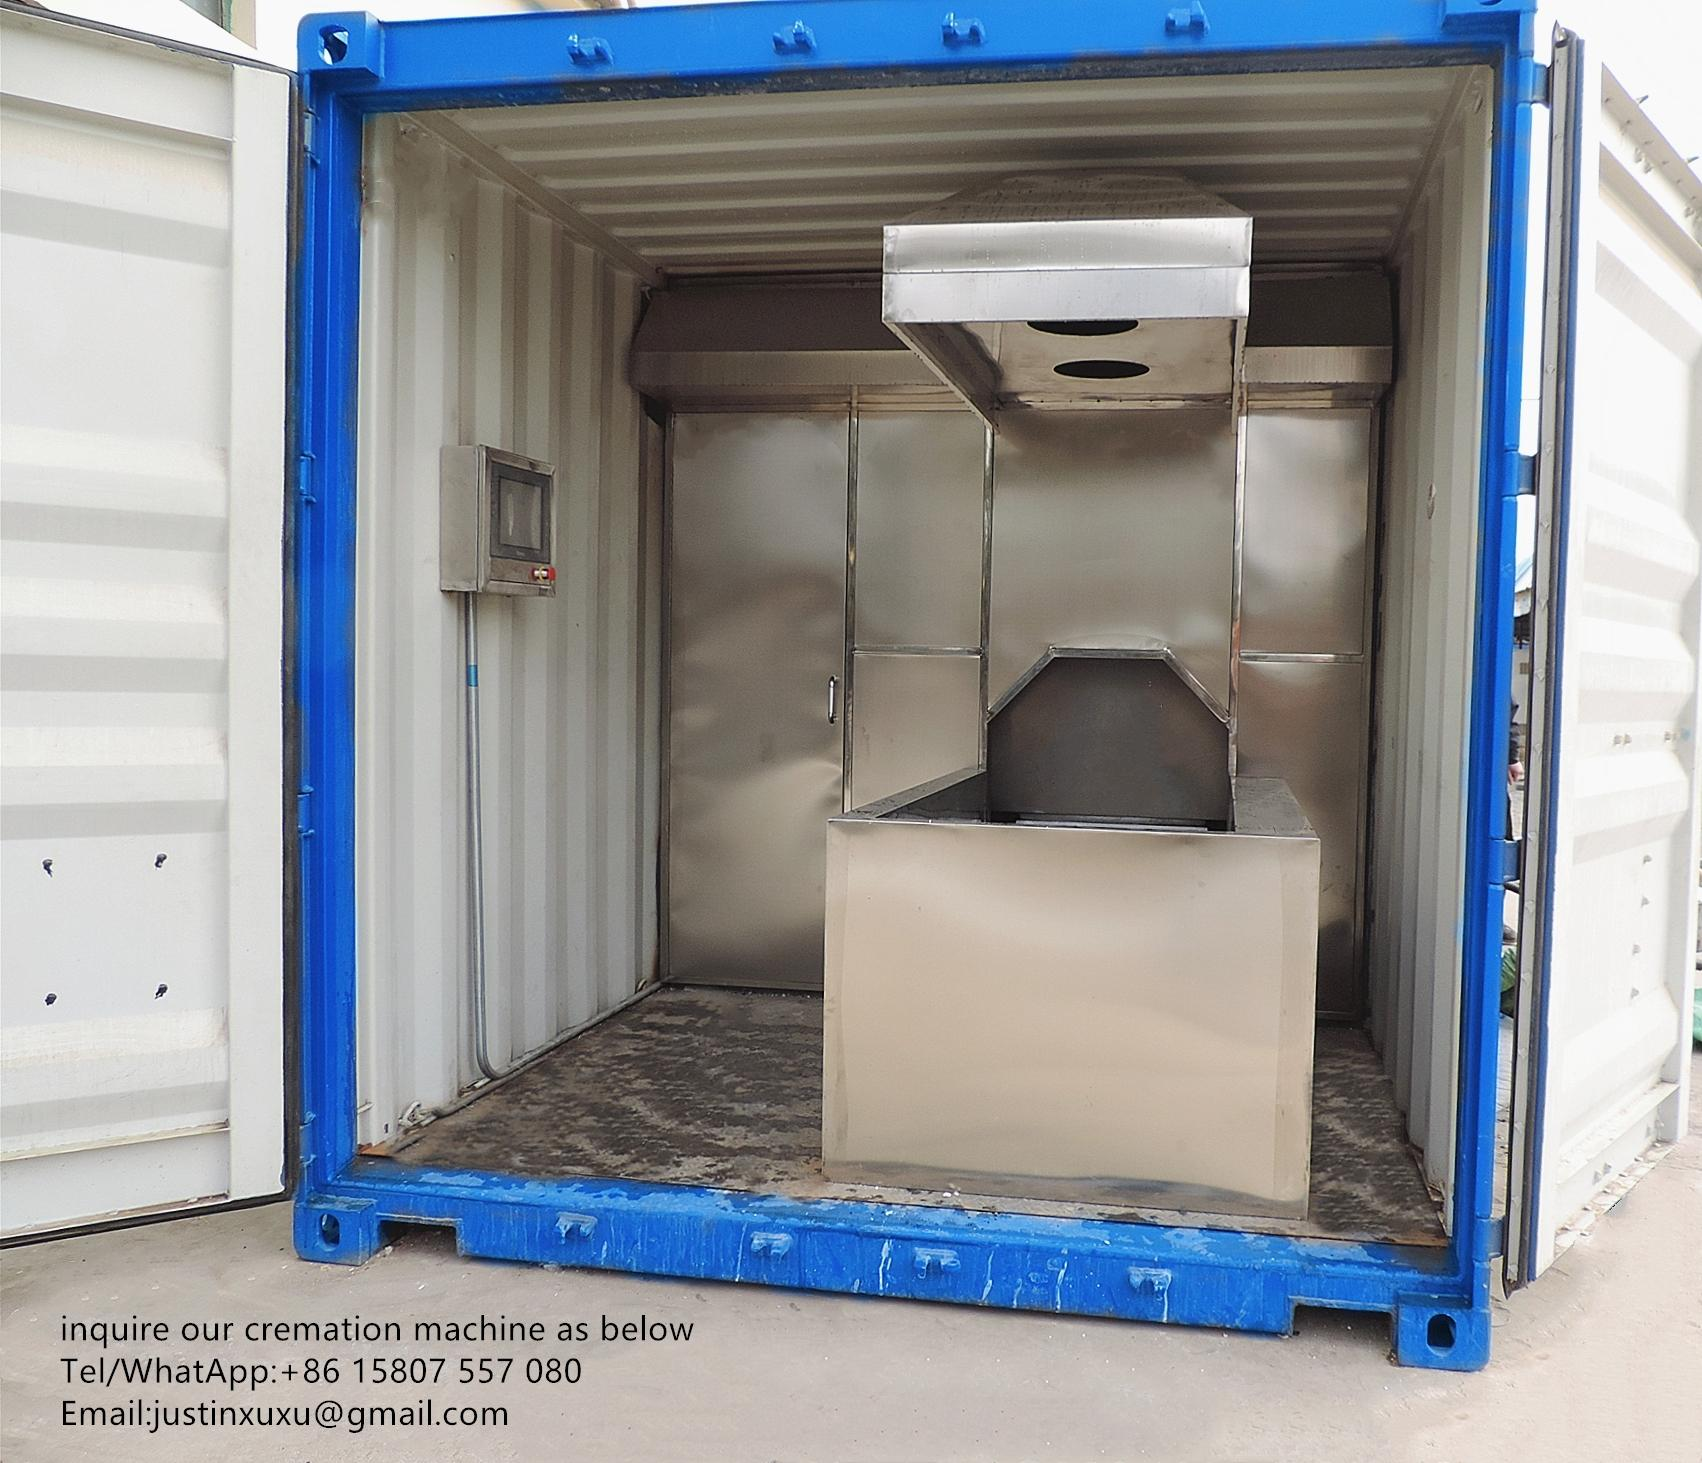 heavy duty durable human cremate machine china designed for Malaysia market 1